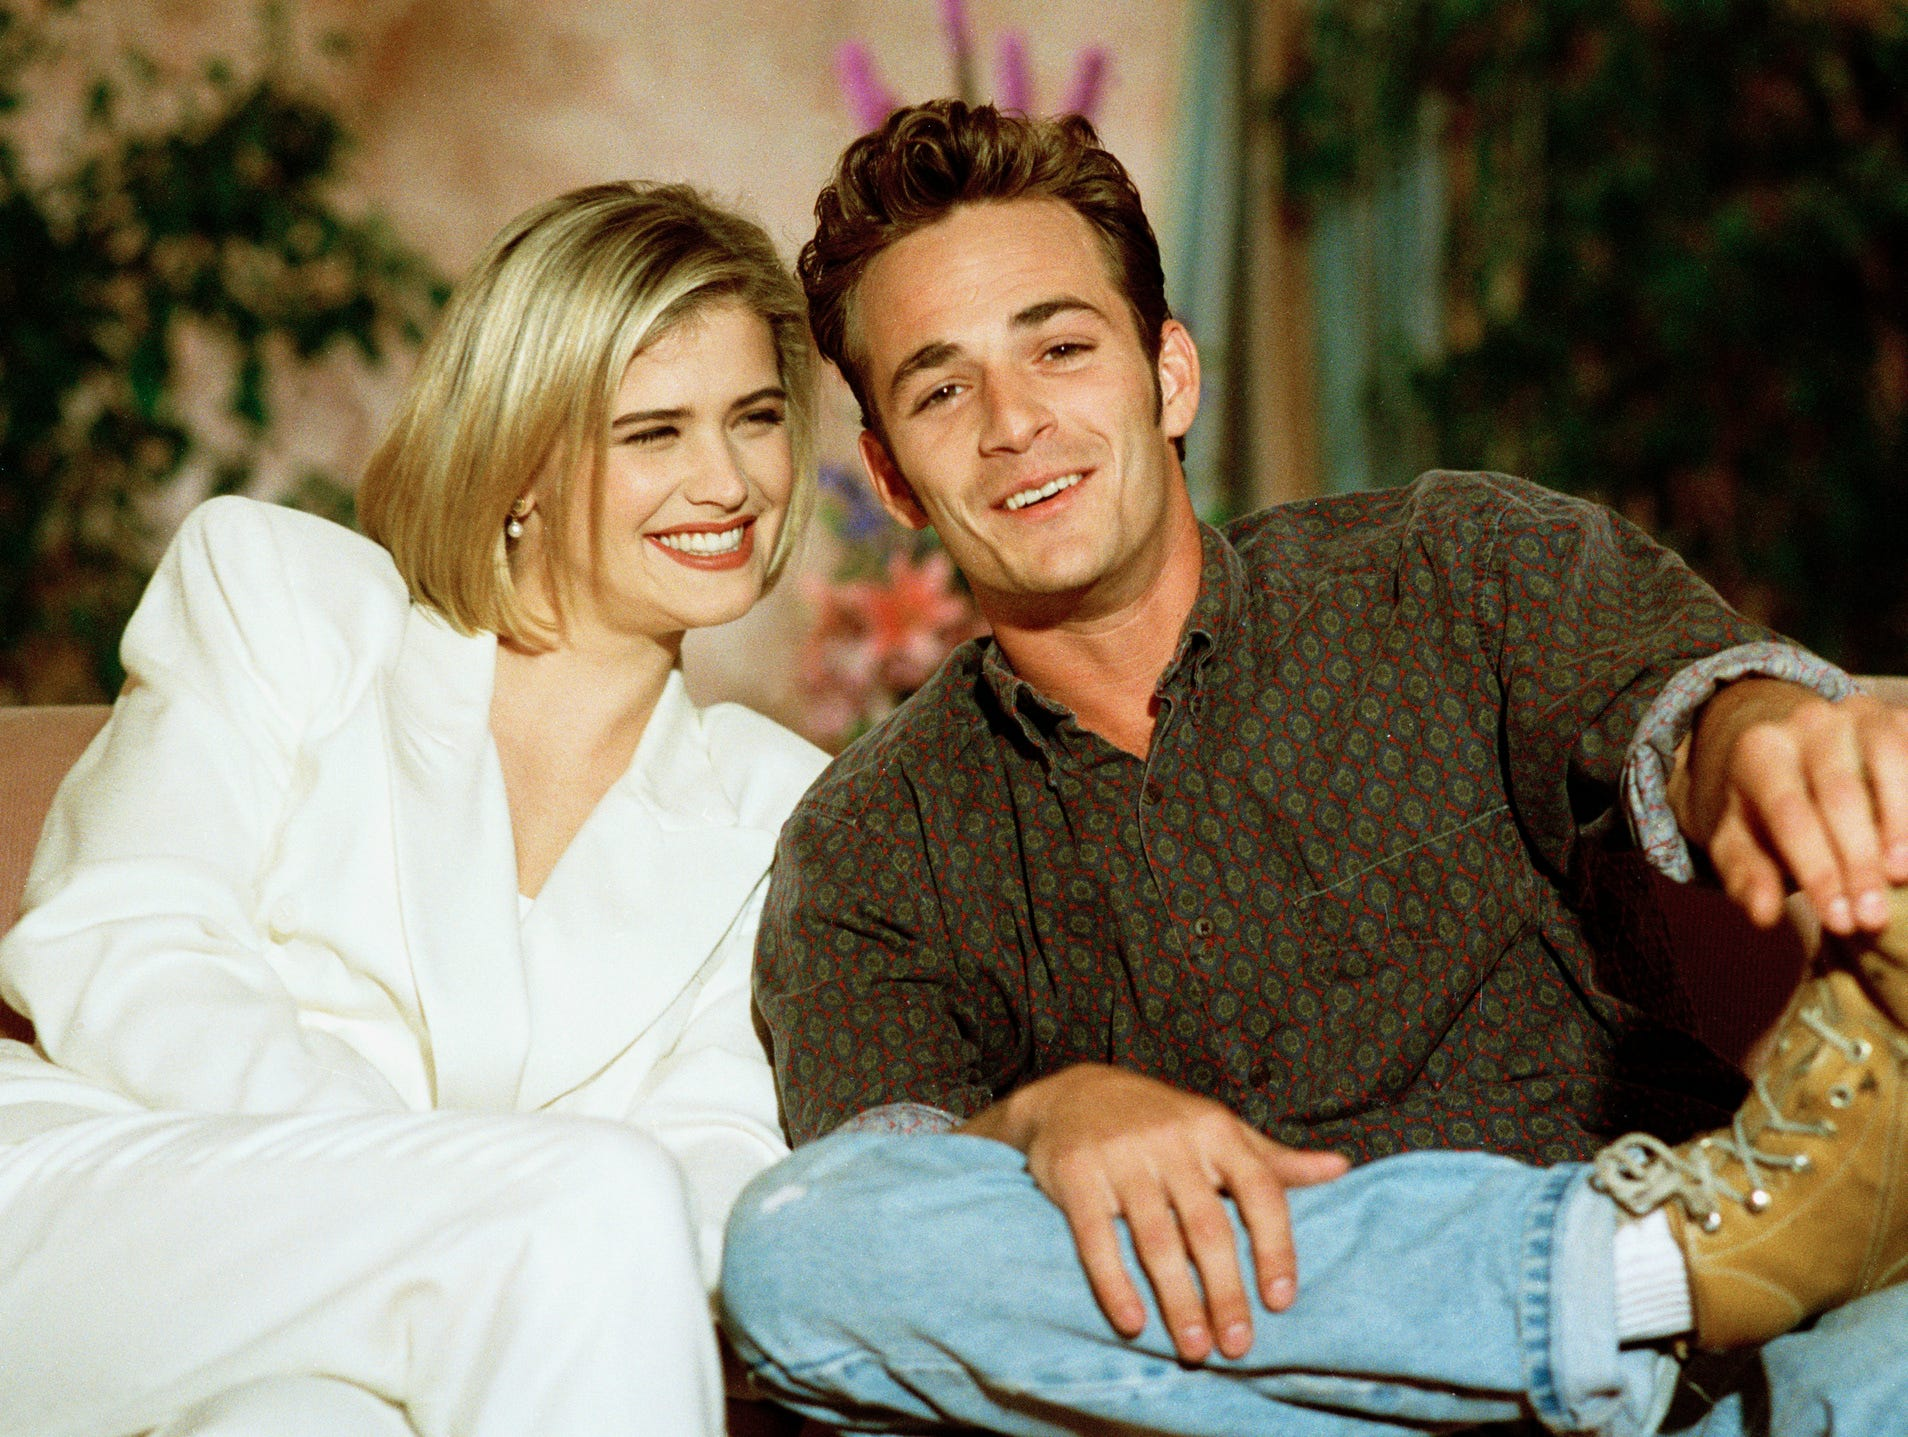 Luke Perry gets sweet photo tribute from his 'Buffy' co-star Kristy Swanson